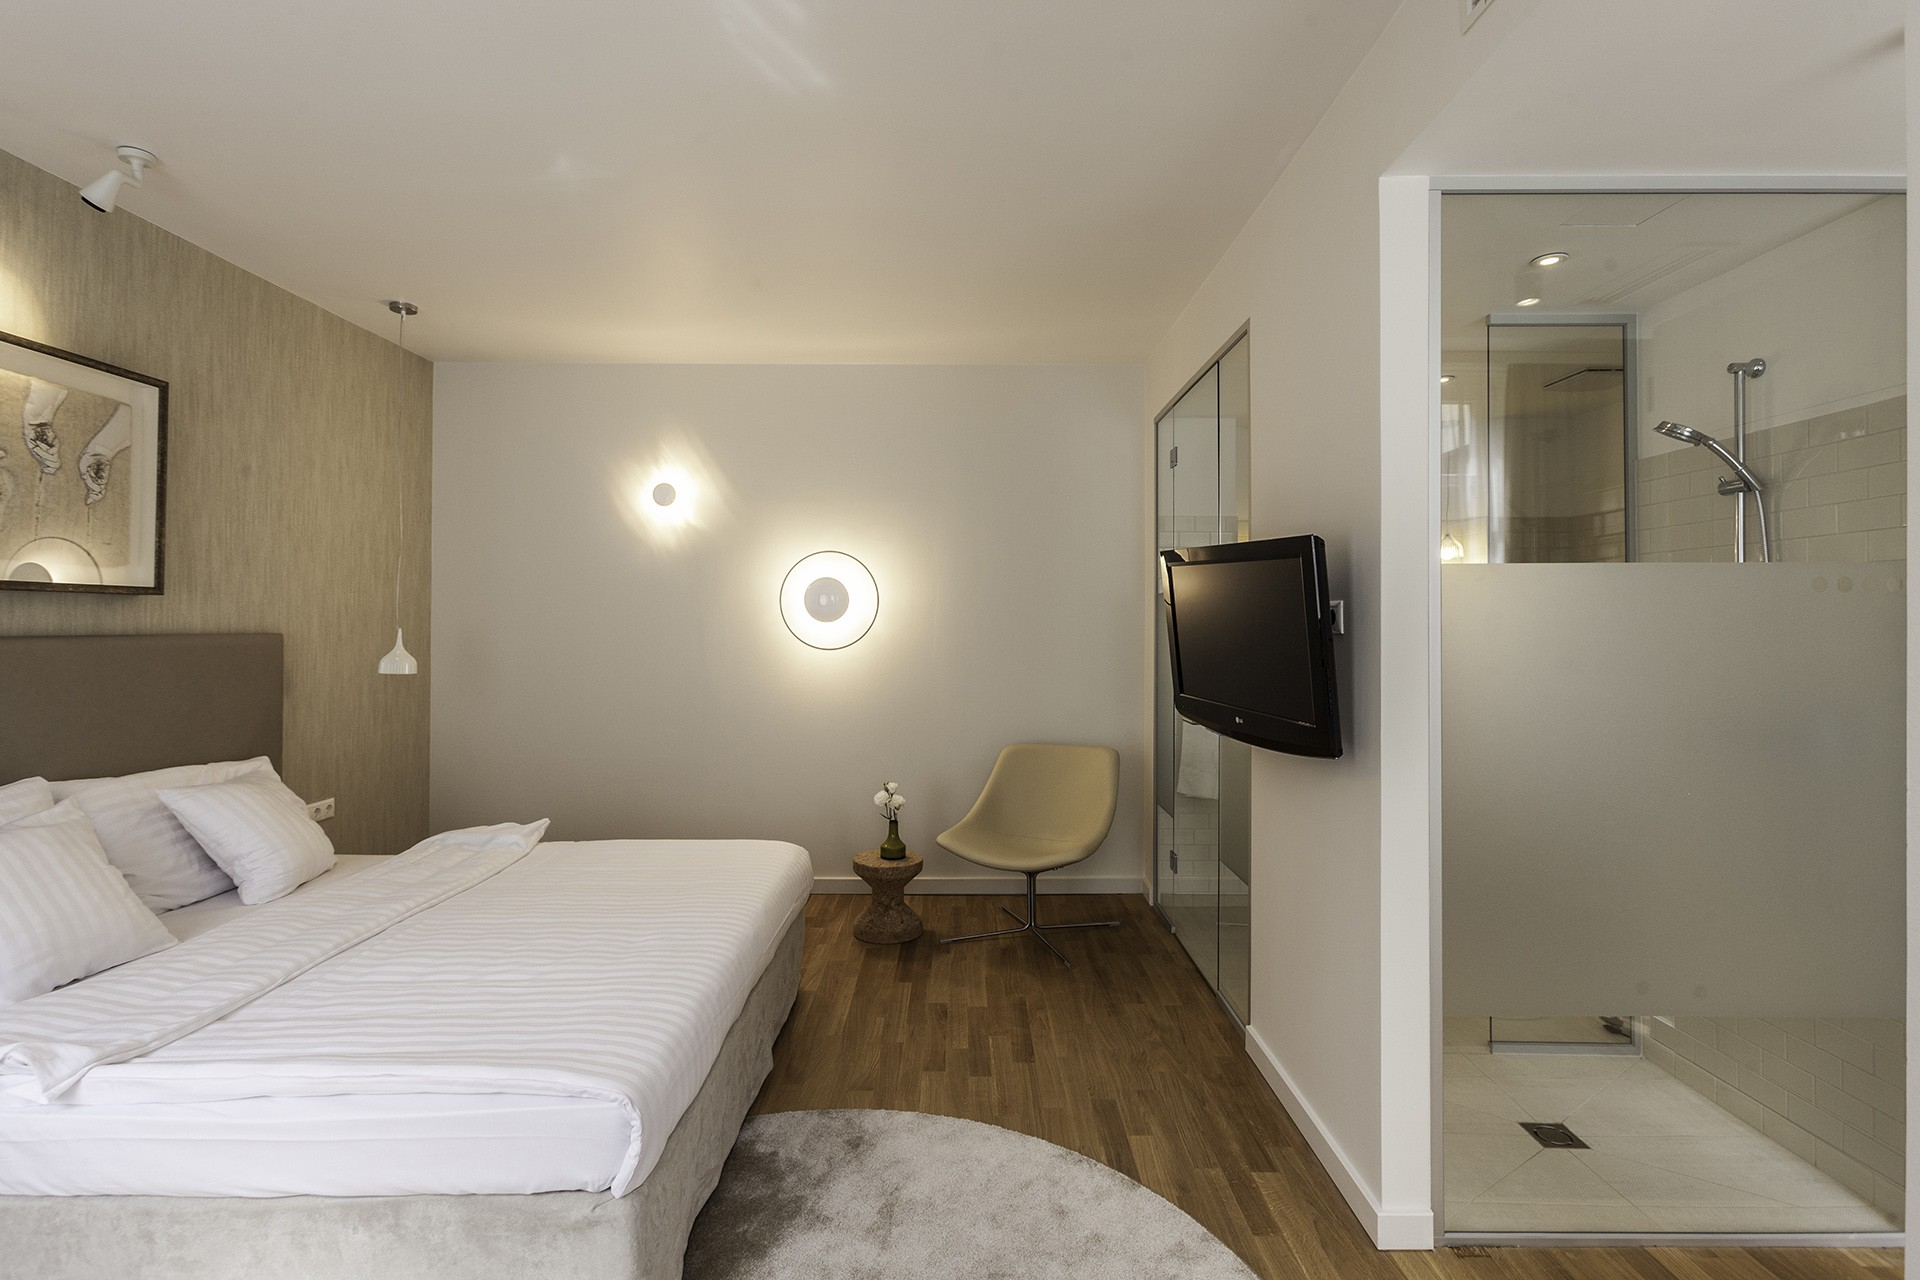 Casati budapest hotel natural rooms official website for Top design hotels budapest